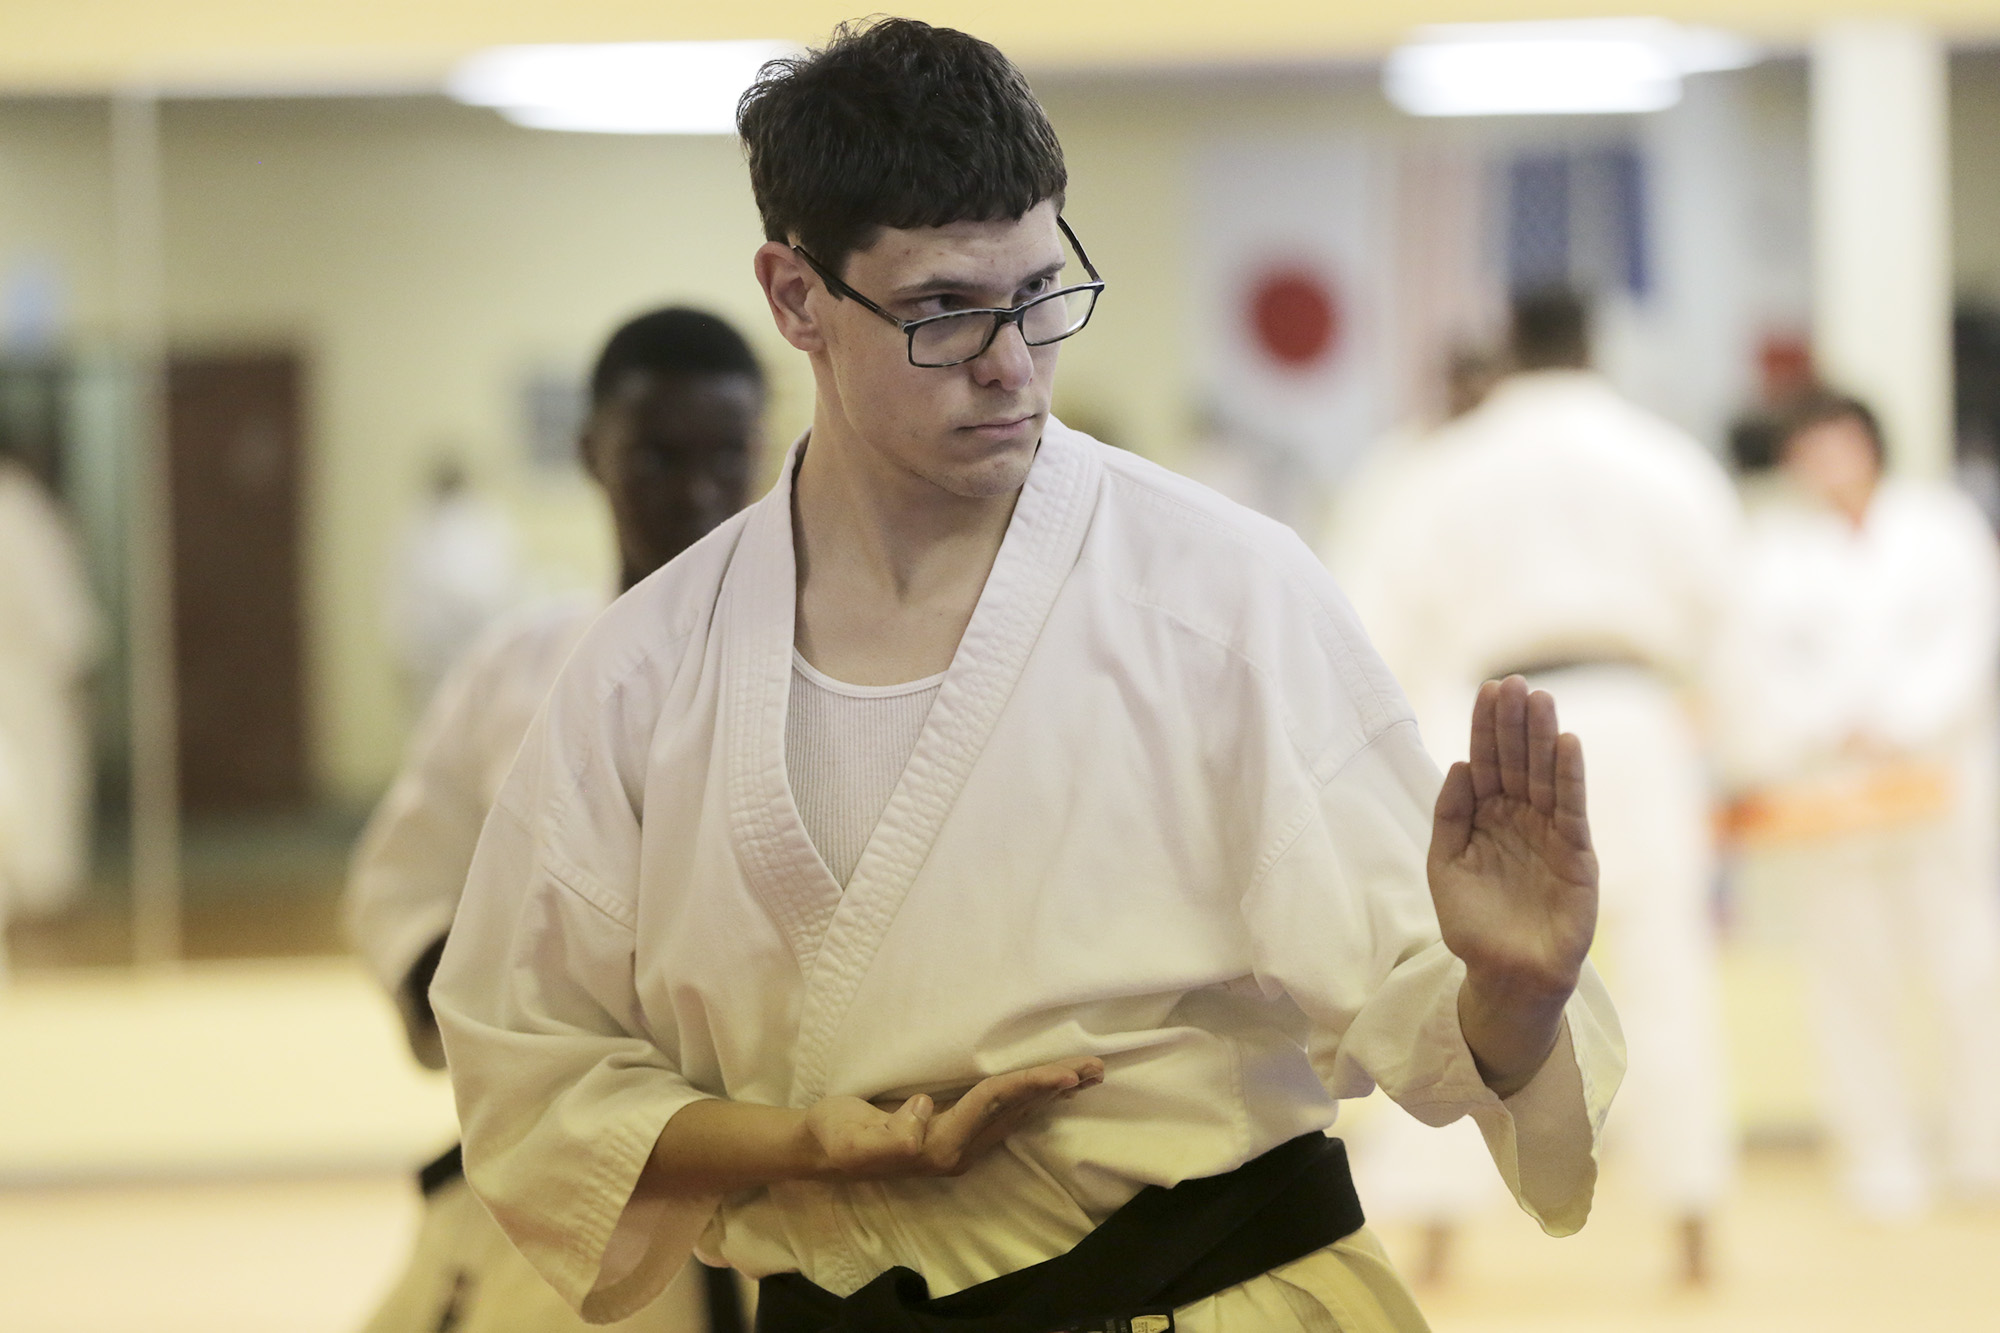 He's got the chops: 21-year-old with autism earns second-degree